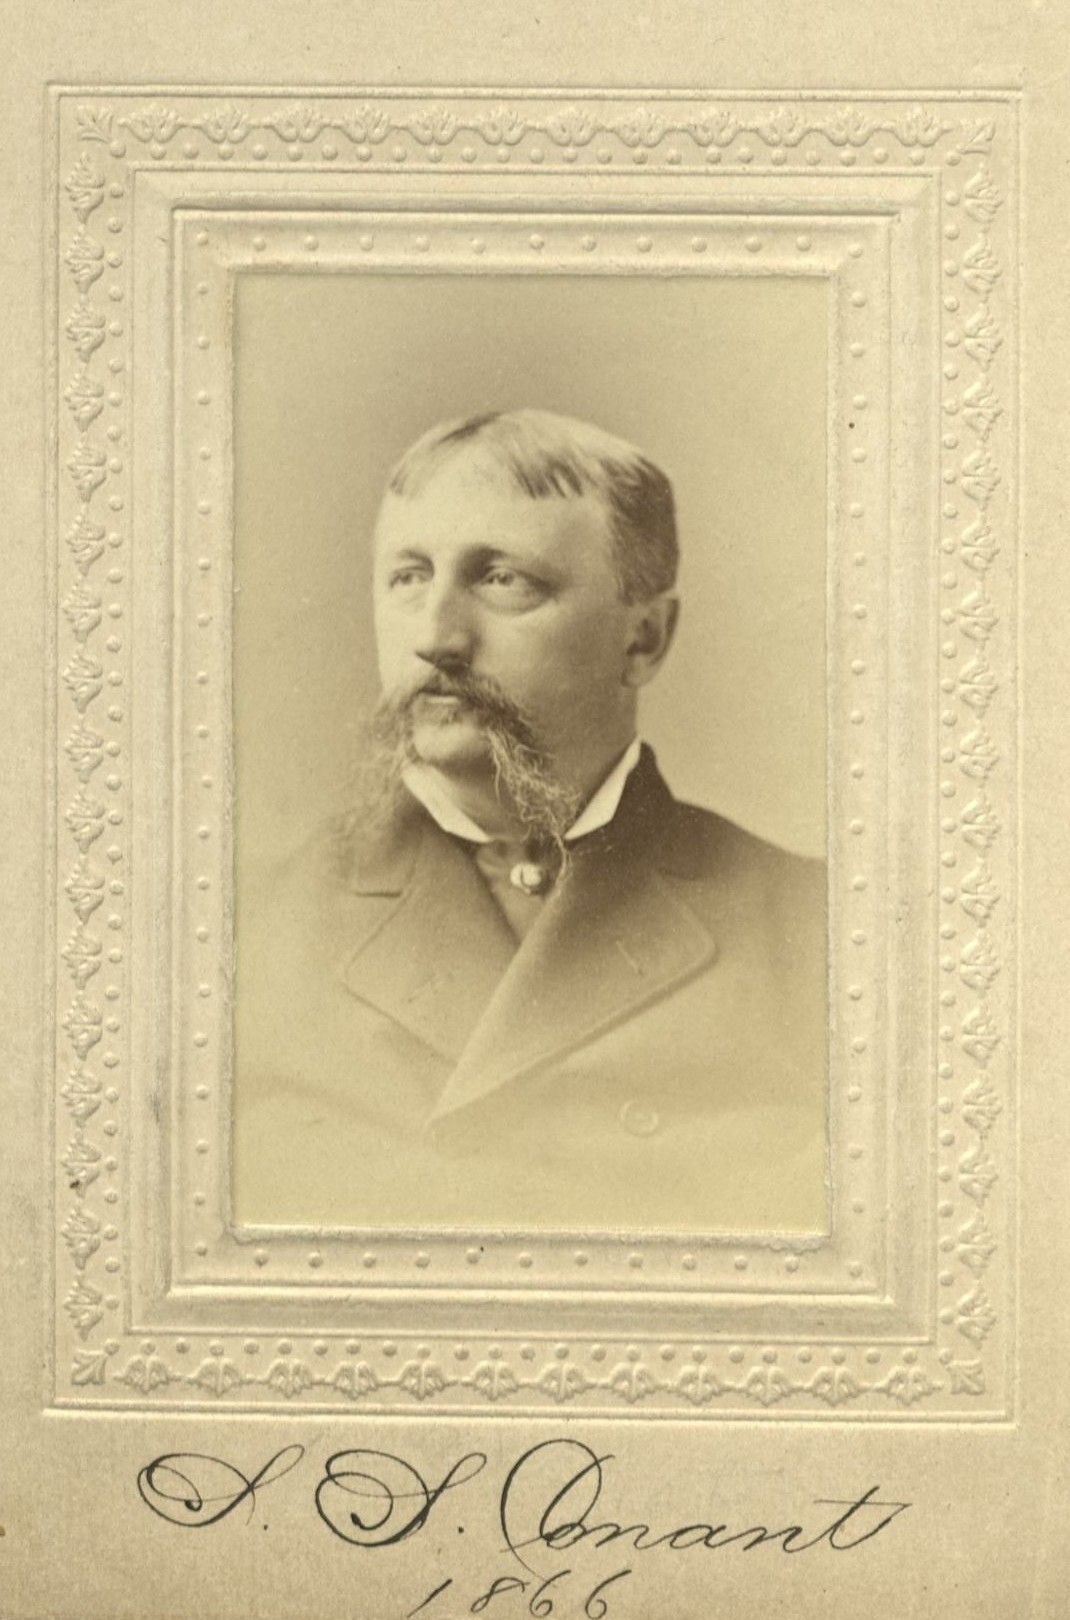 Member portrait of S. S. Conant